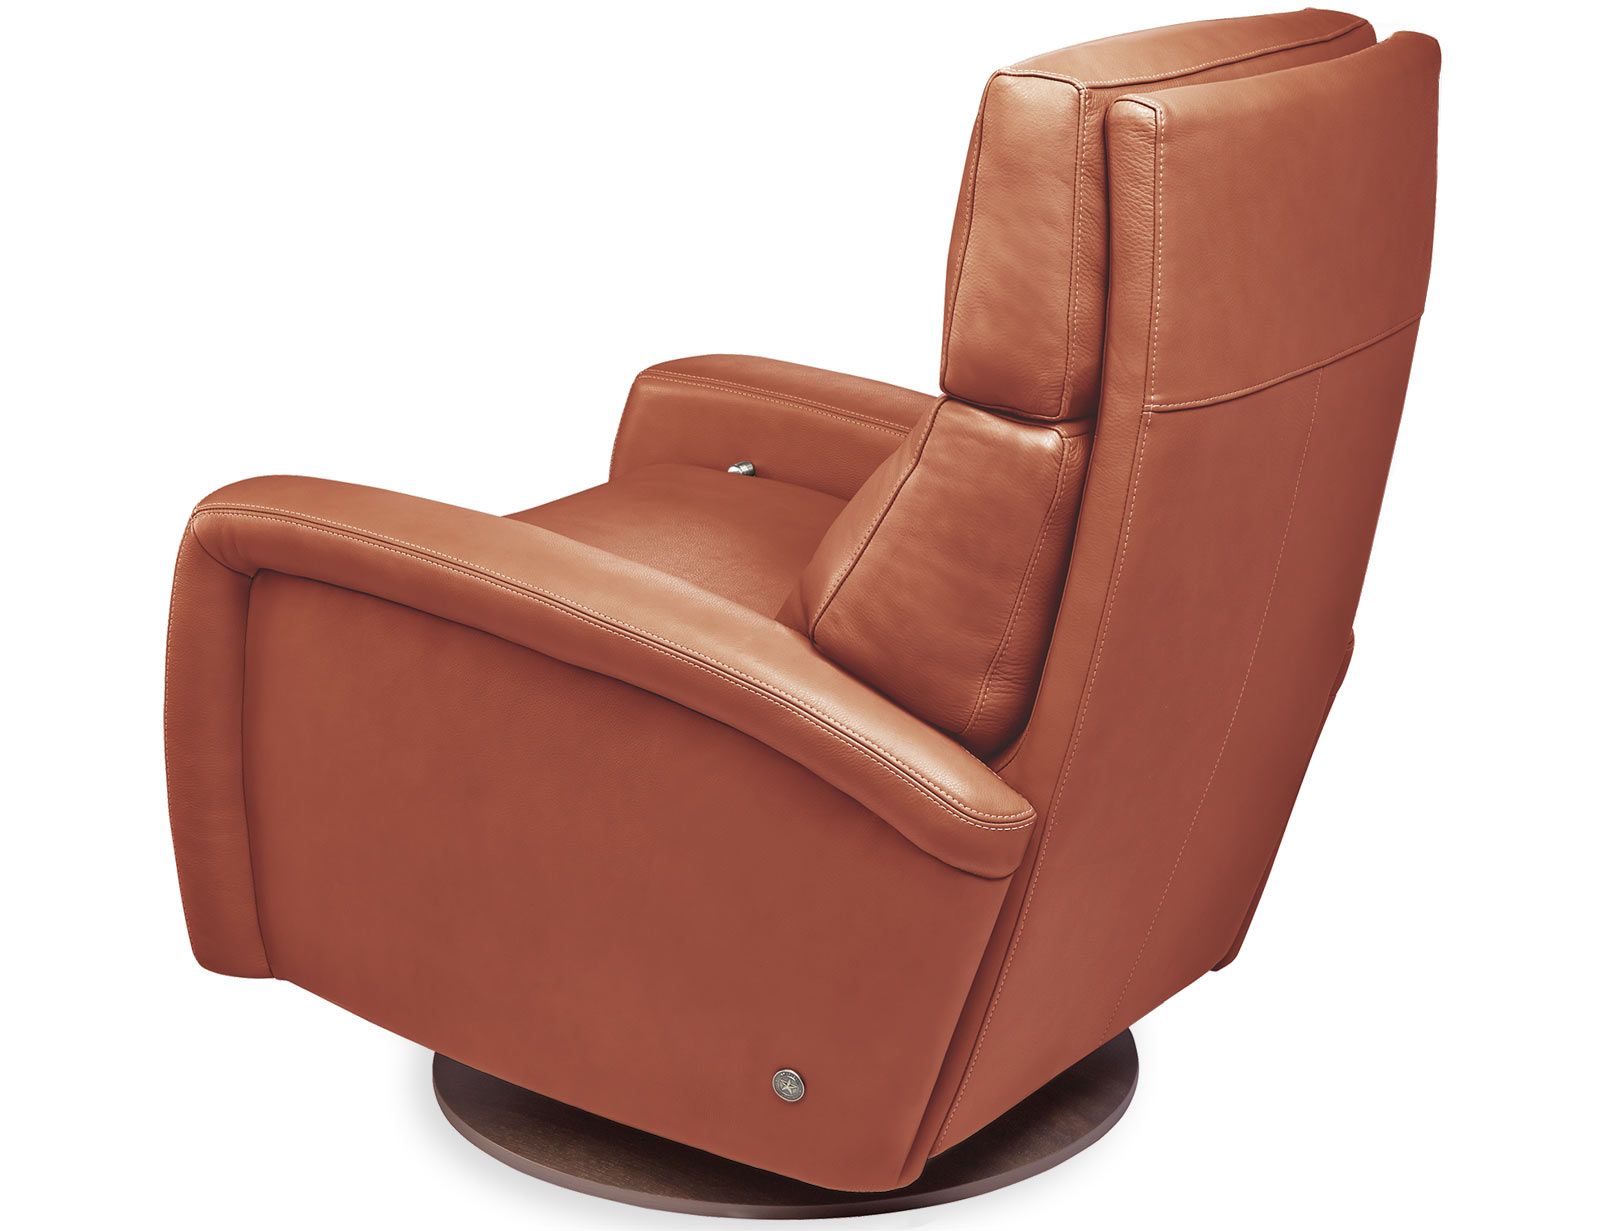 American Leather Dexter Comfort Recliner available with swivel base